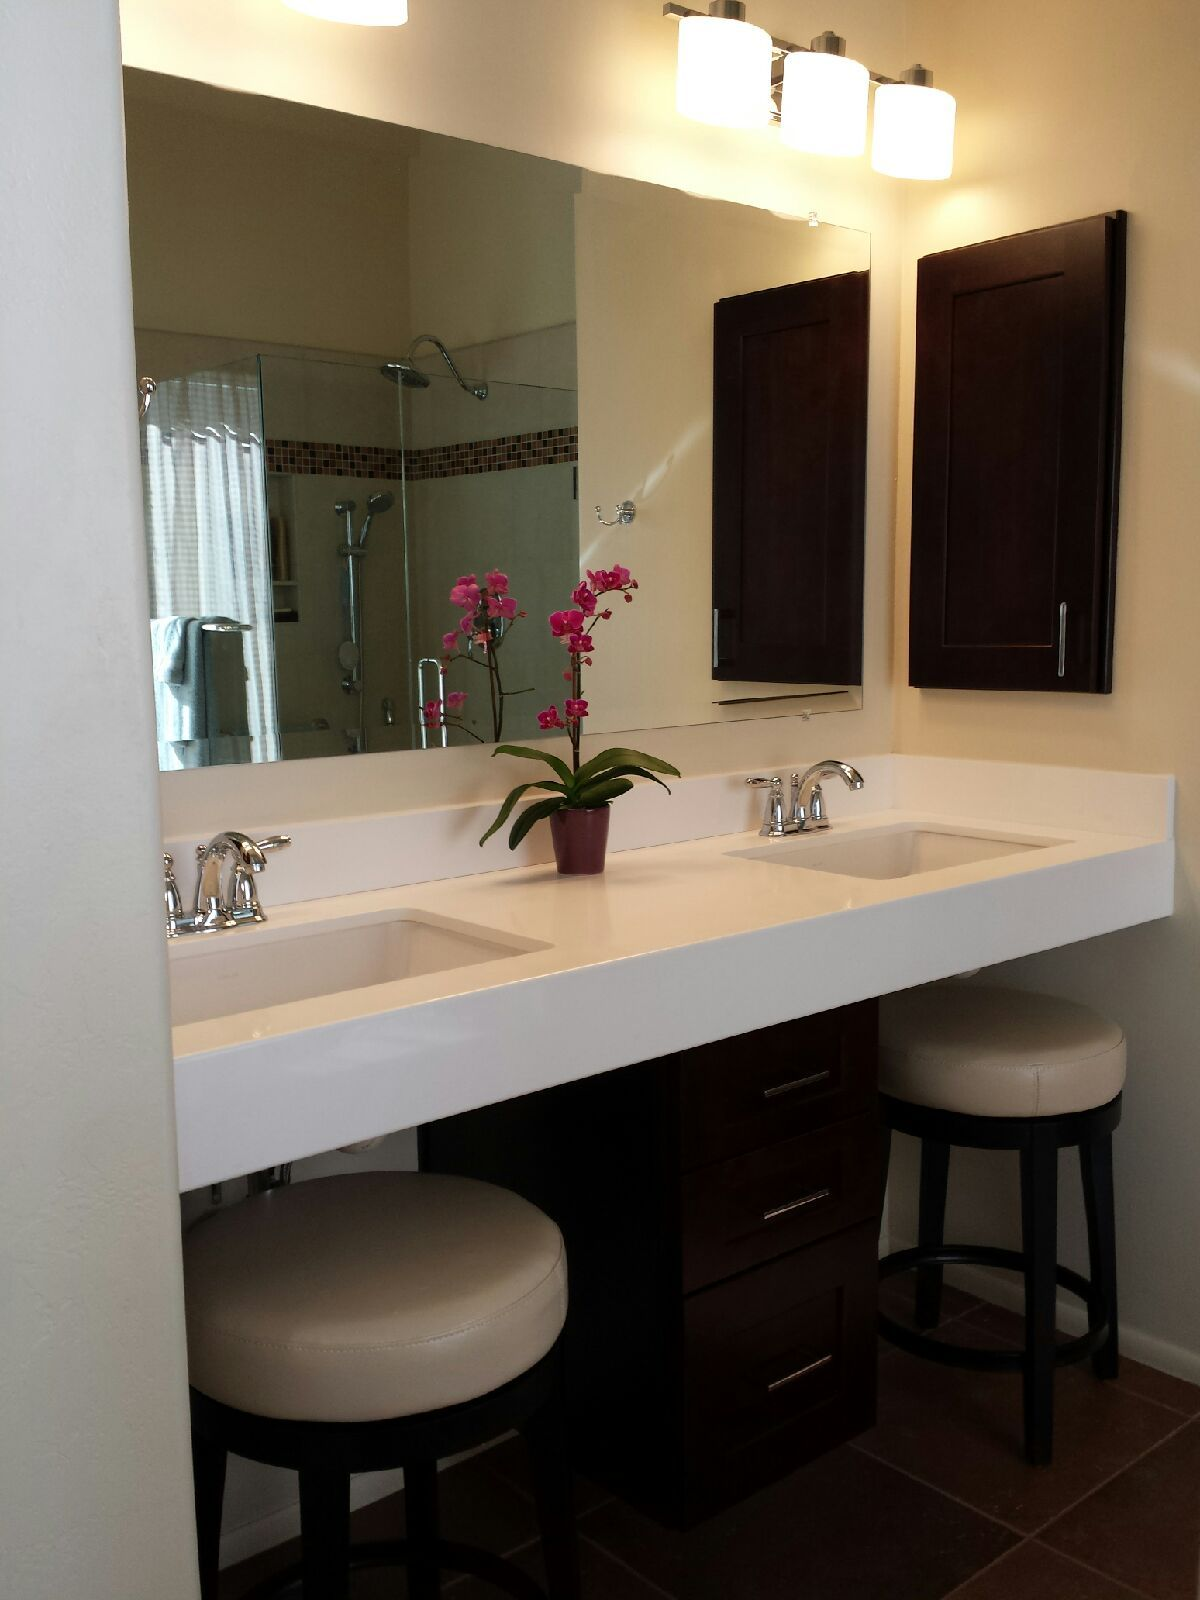 Master Bath Vanity with Ada Accessible Roll Under Style Sink Base